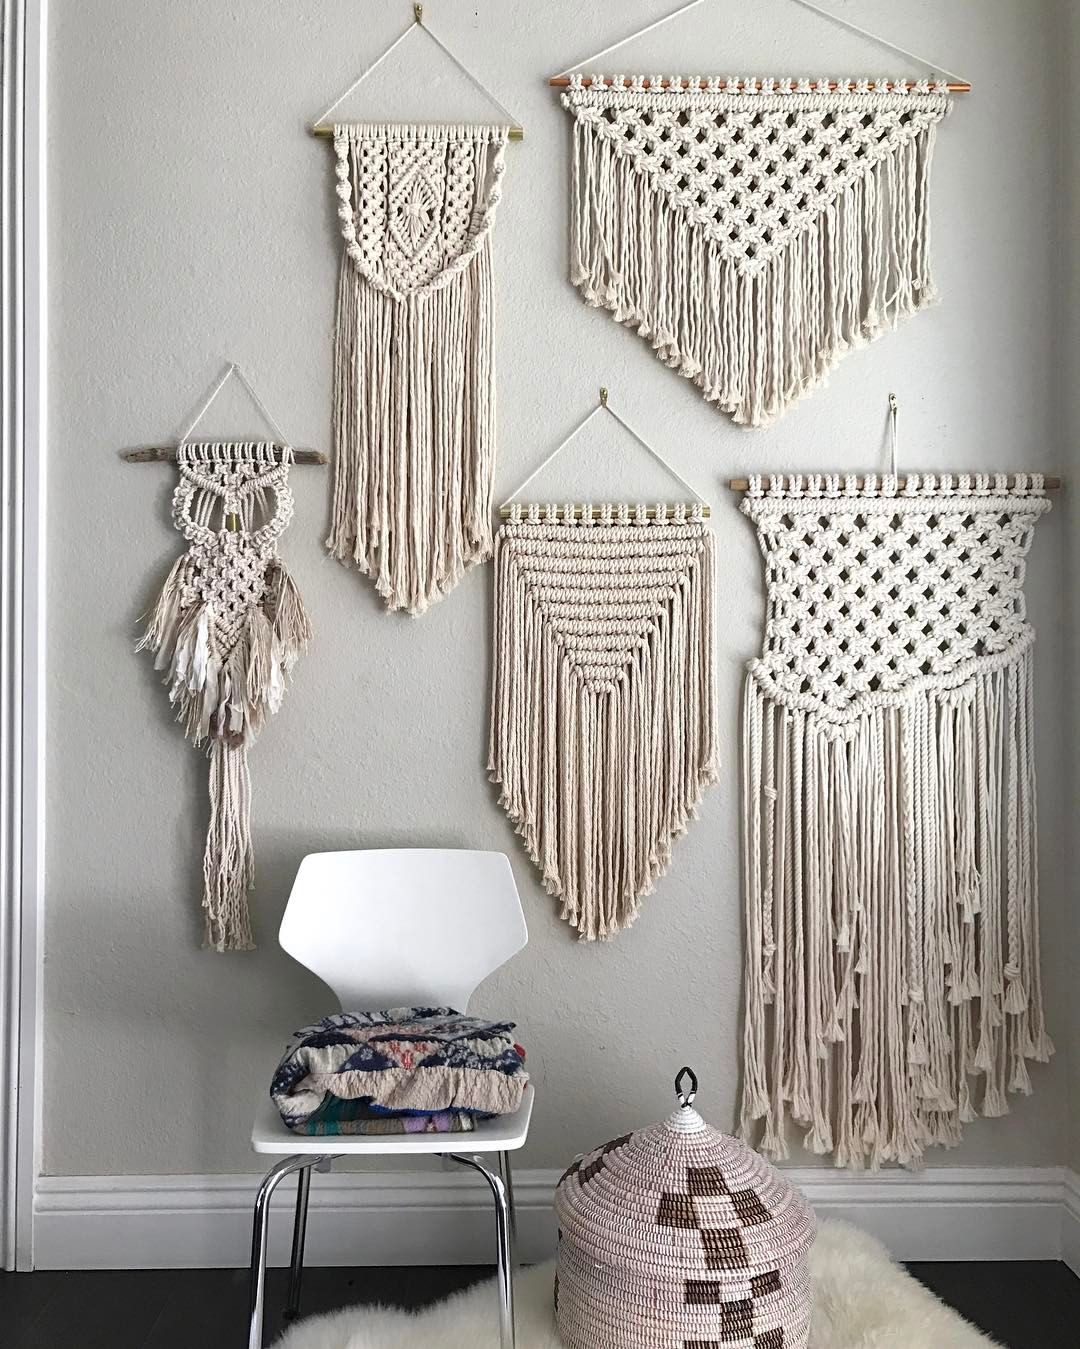 Macram macrame pinterest macram tissage et murale - Comment faire une suspension en macrame ...